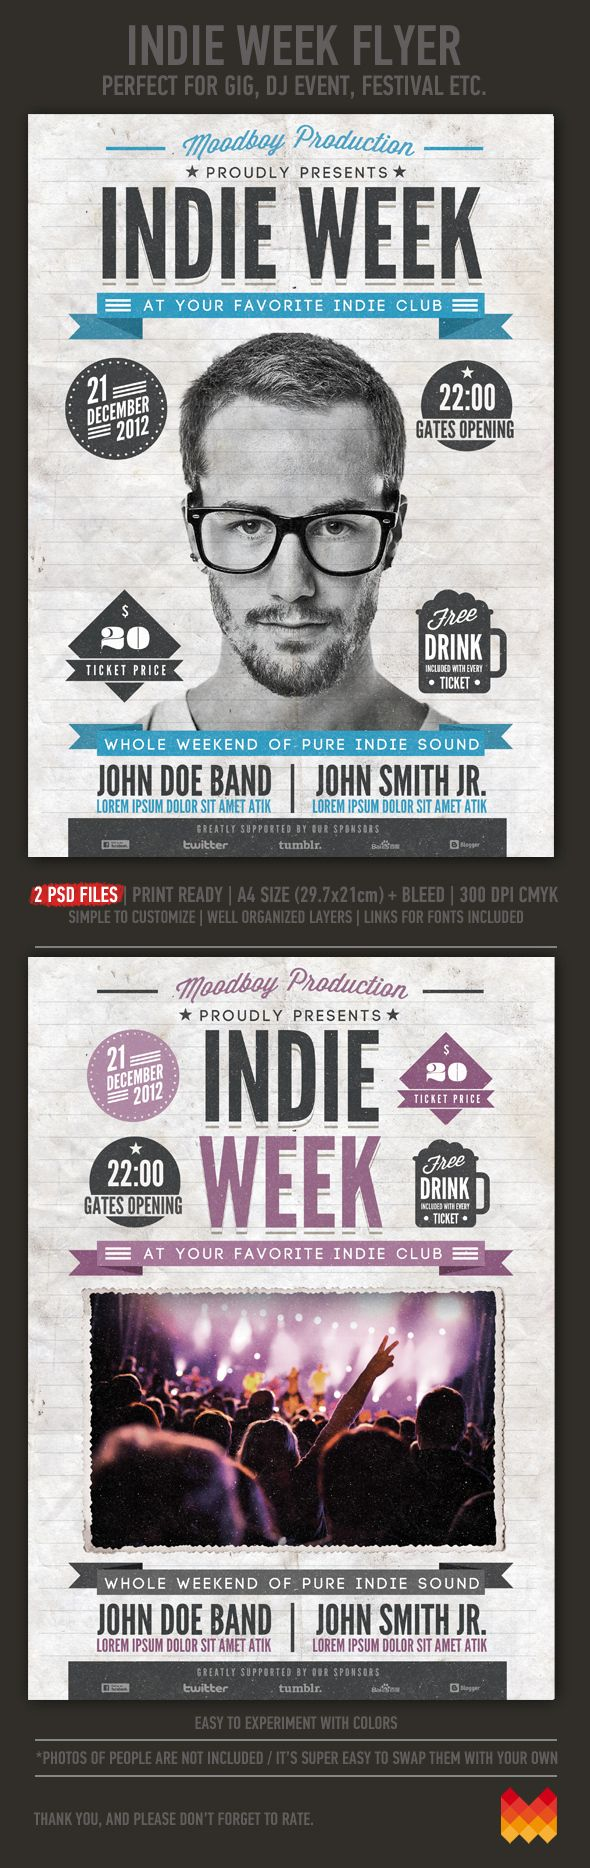 Indie Week #Poster by moodboy , via #Behance #Design